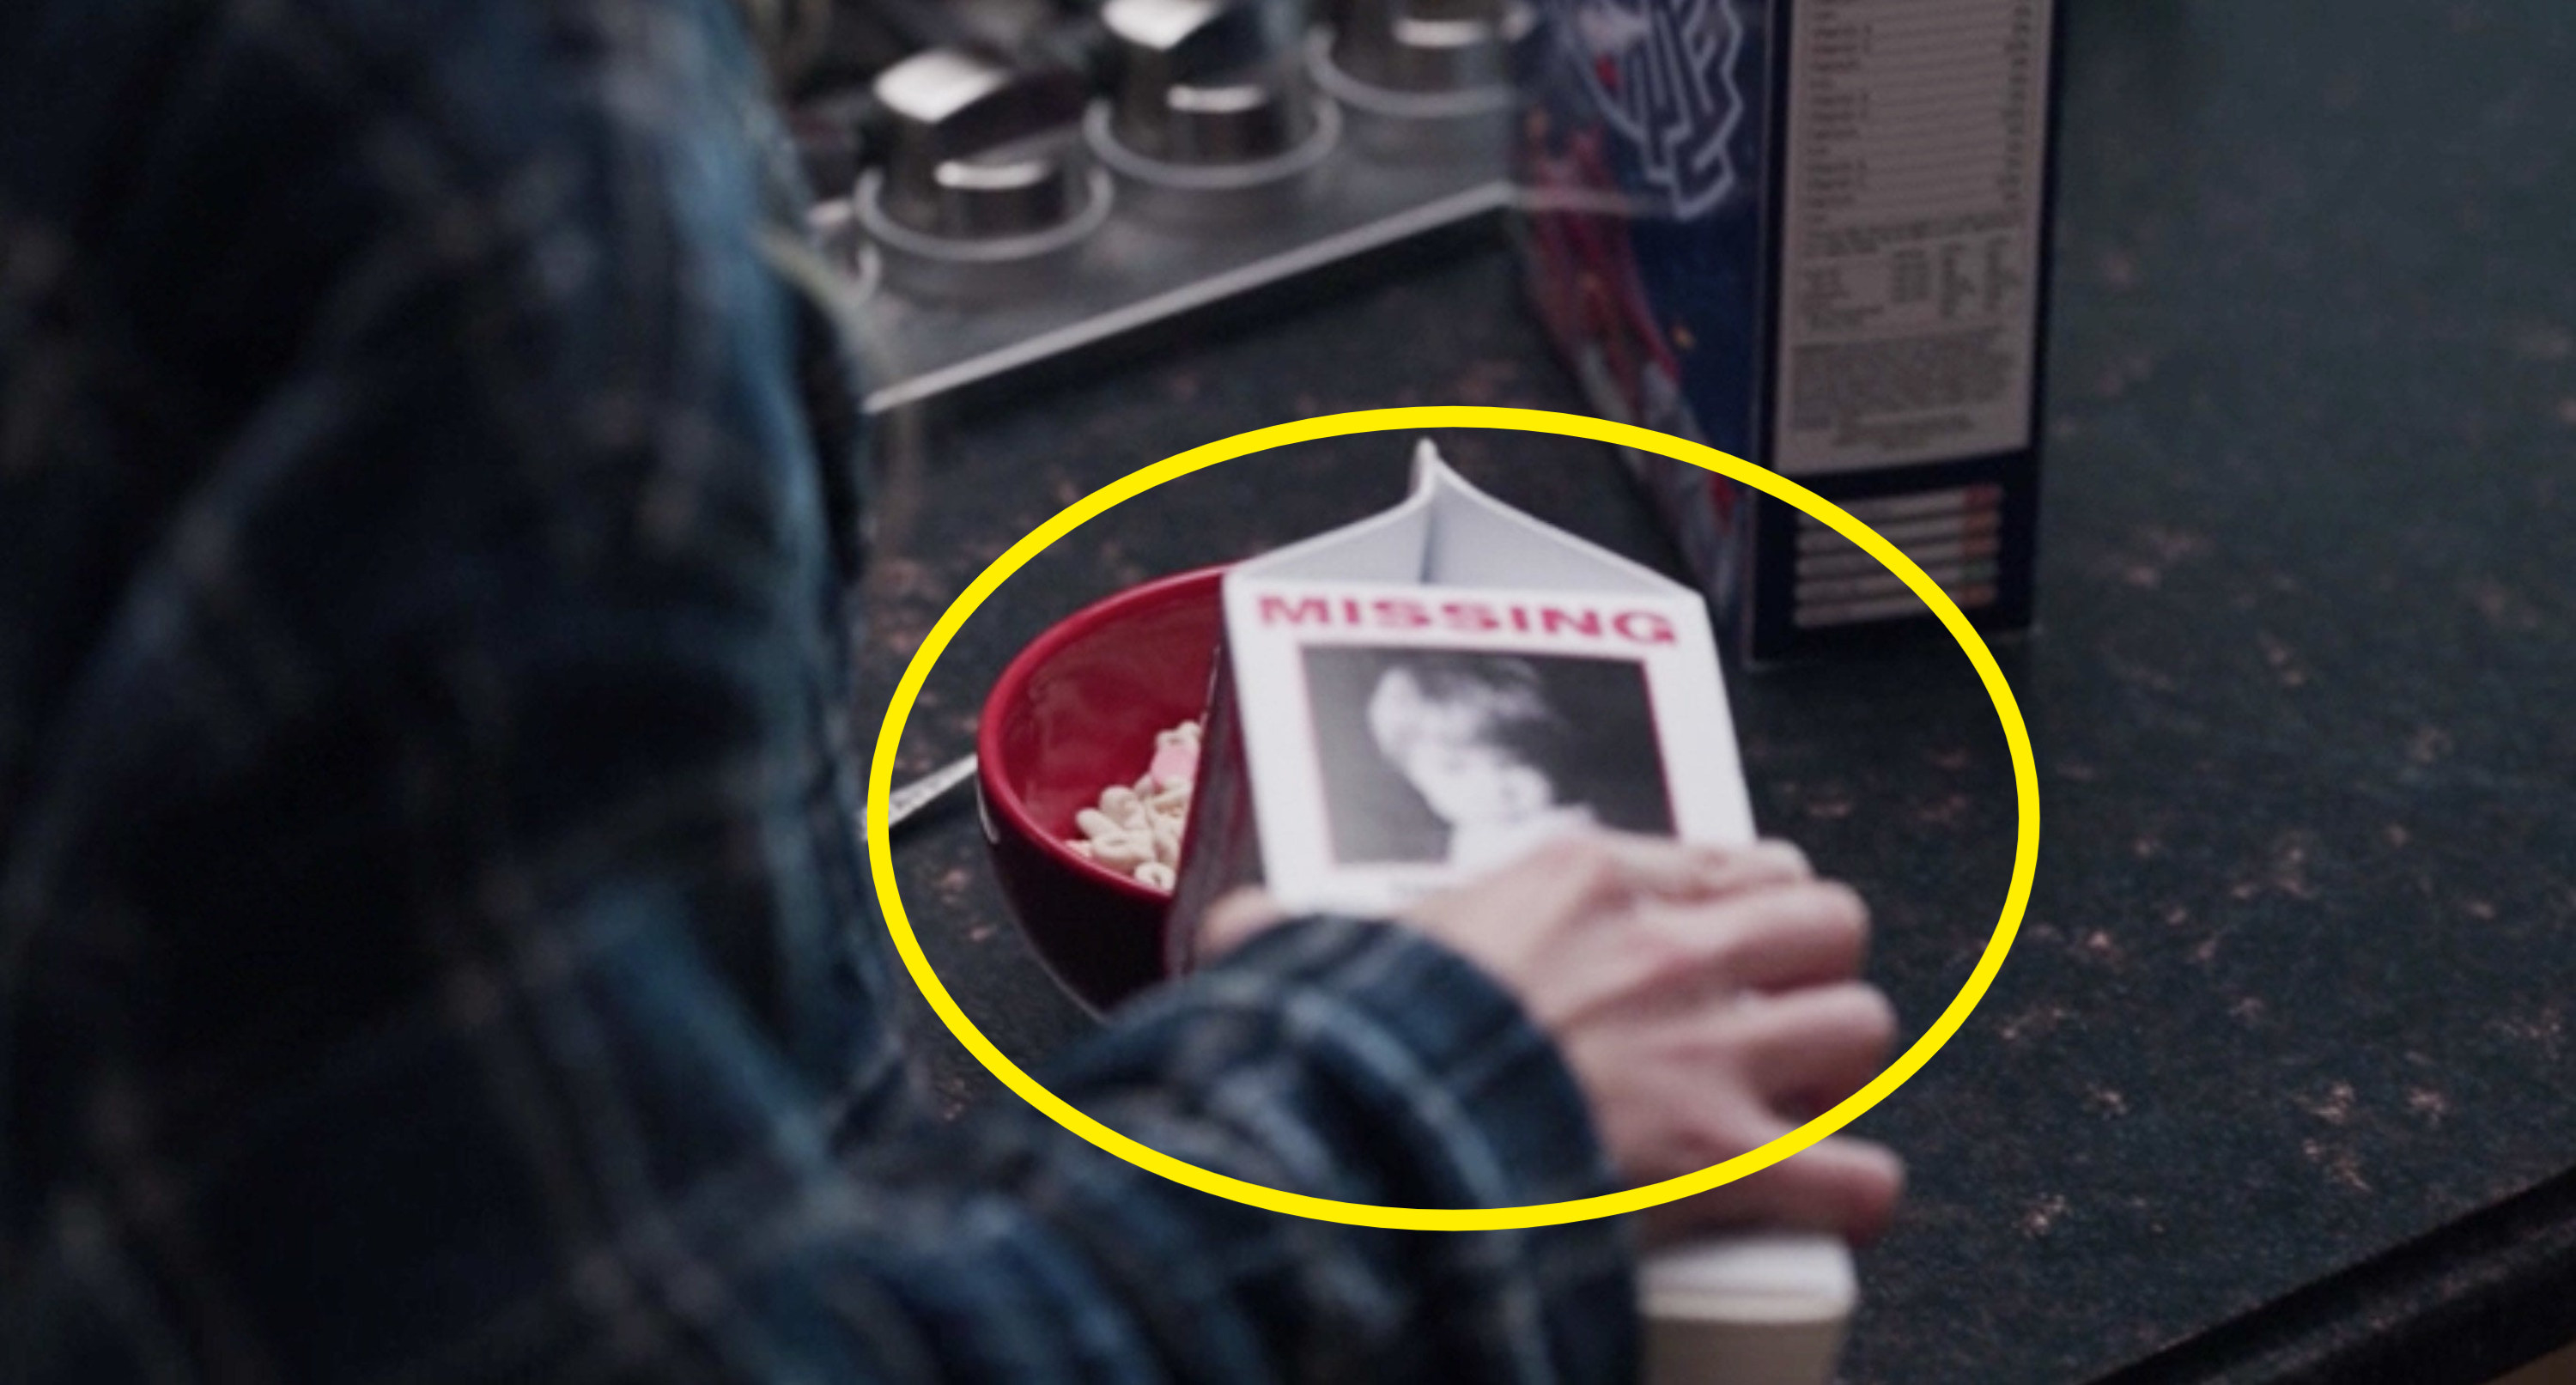 Wanda pouring milk from a carton that features a photo of a missing child